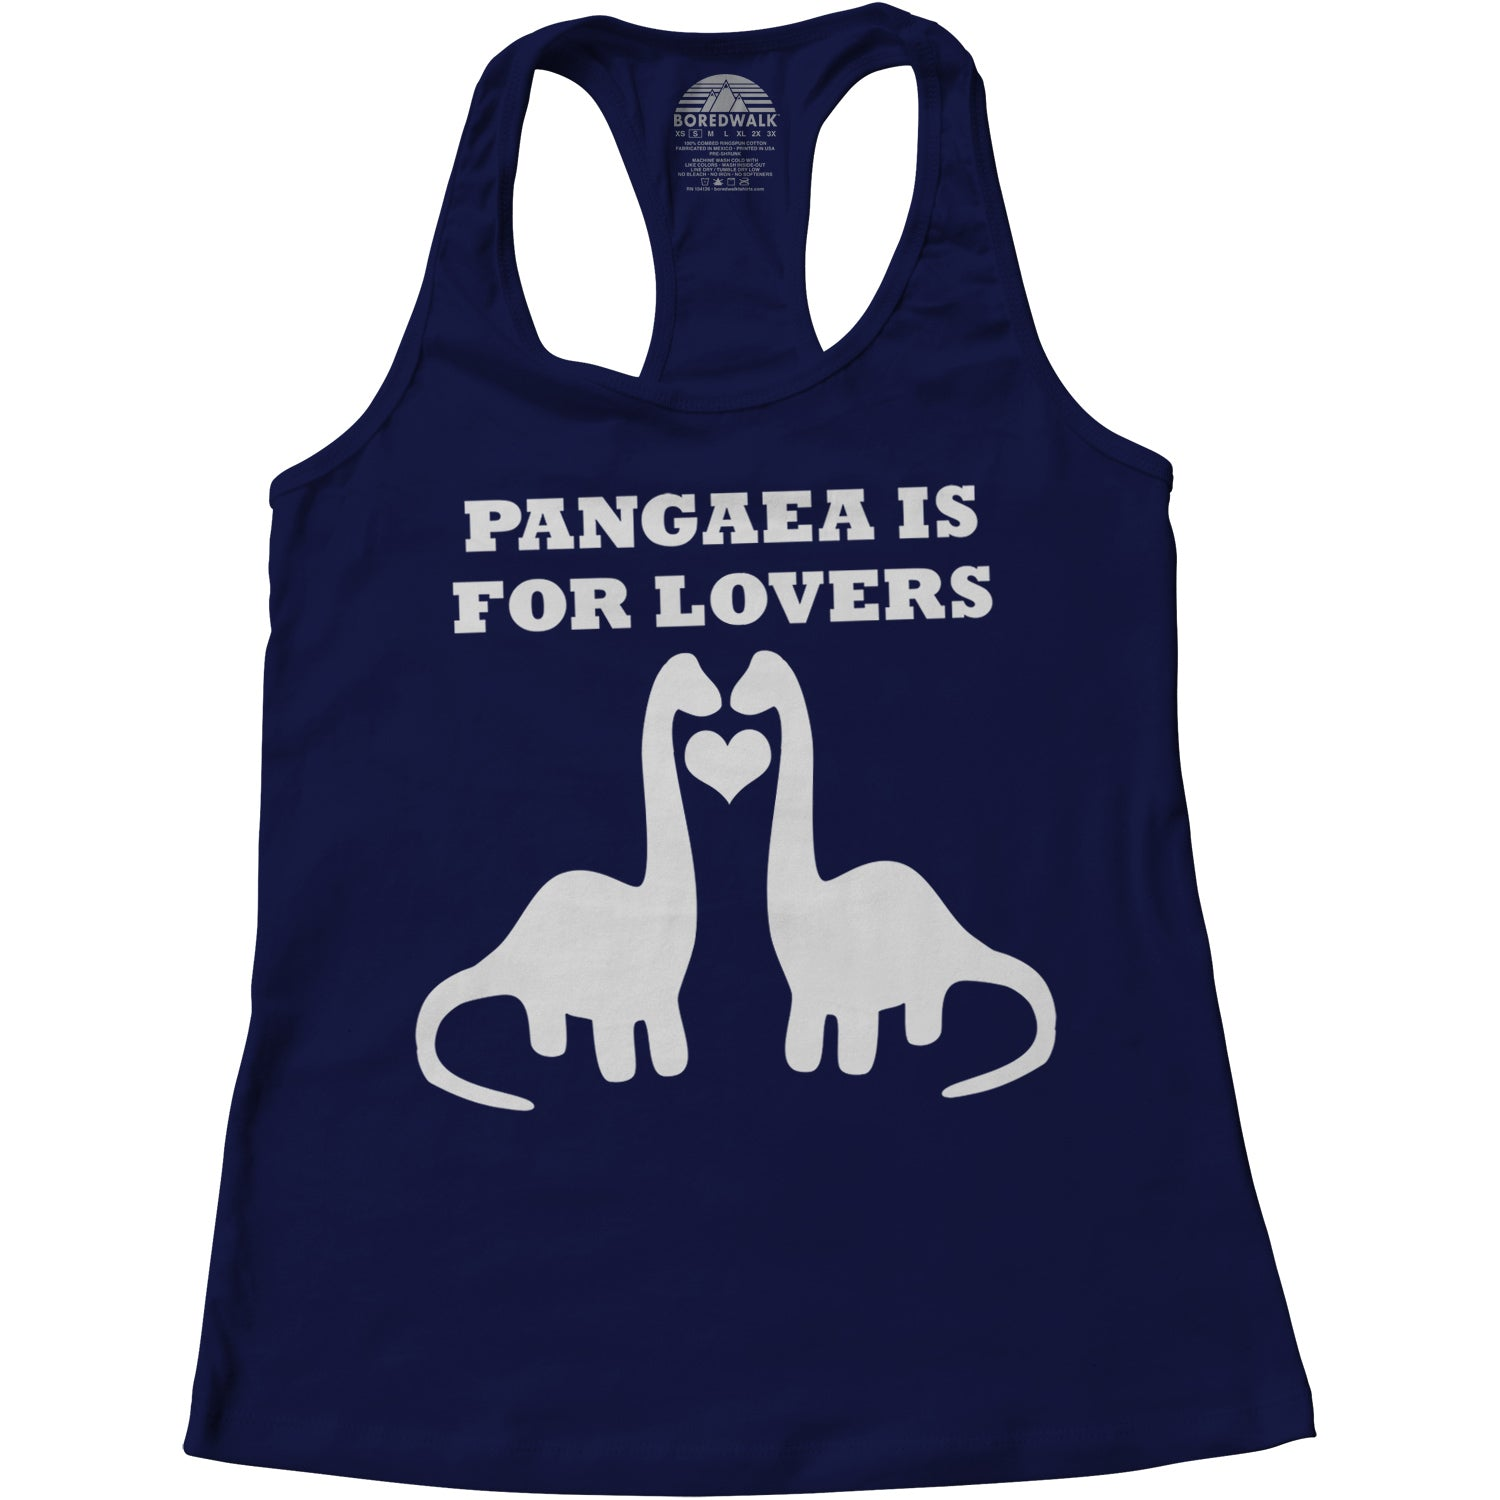 Women's Pangaea Is For Lovers Funny Dinosaur Racerback Tank Top